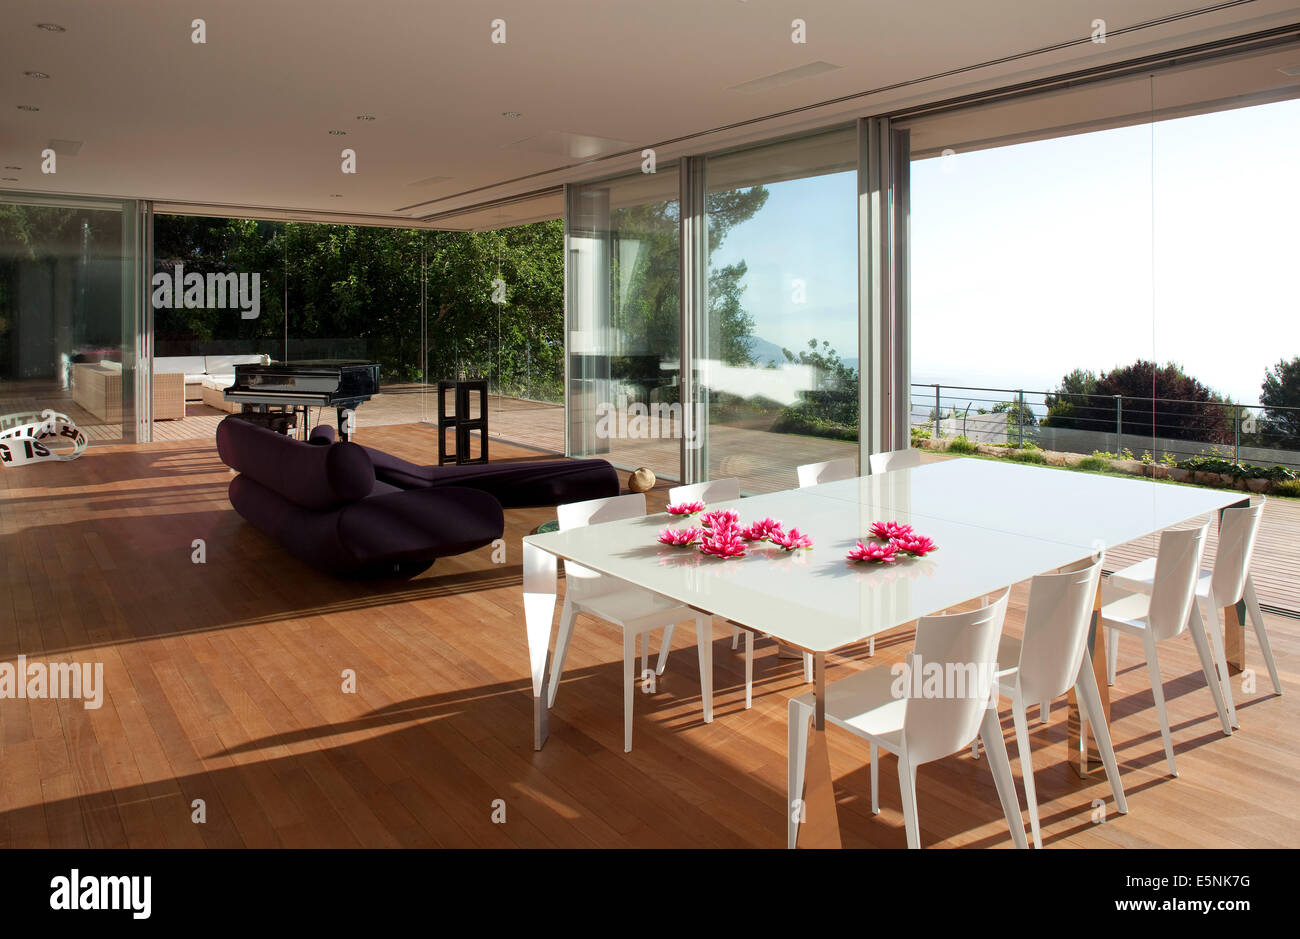 Open Plan Dining Room With View Through Full Length Windows To Terrace Of L House Israel Middle East